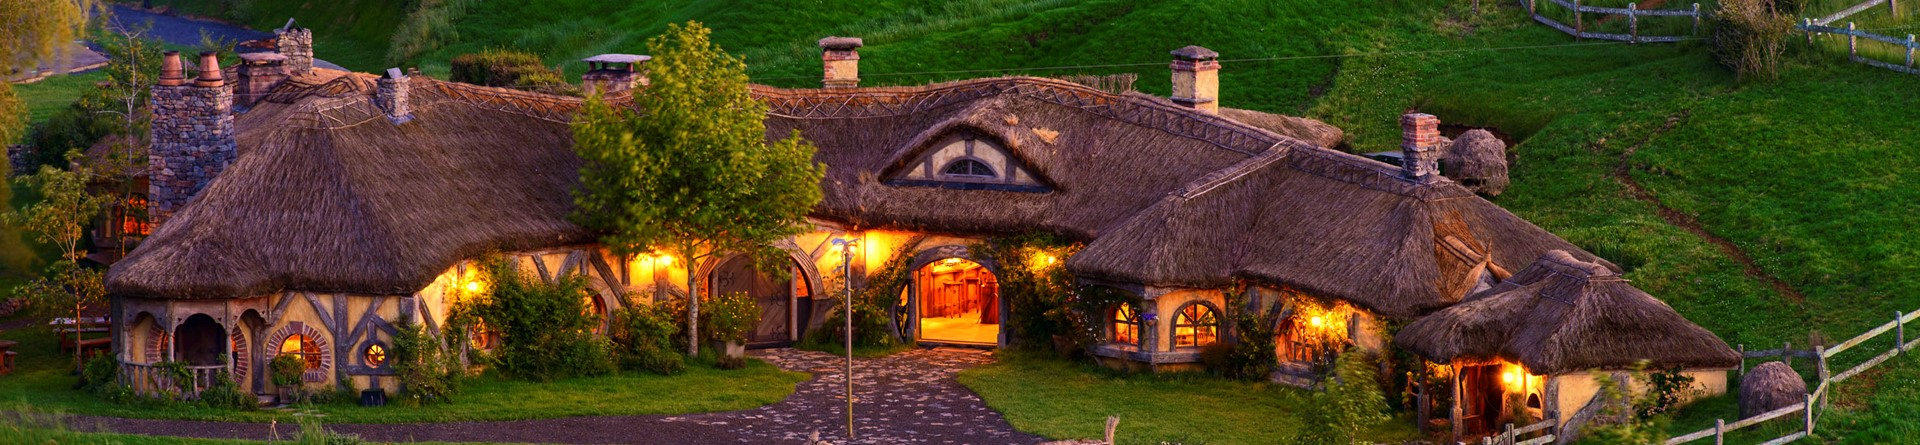 The Green Dragon Inn, Hobbiton Movie Set, Matamata, New Zealand